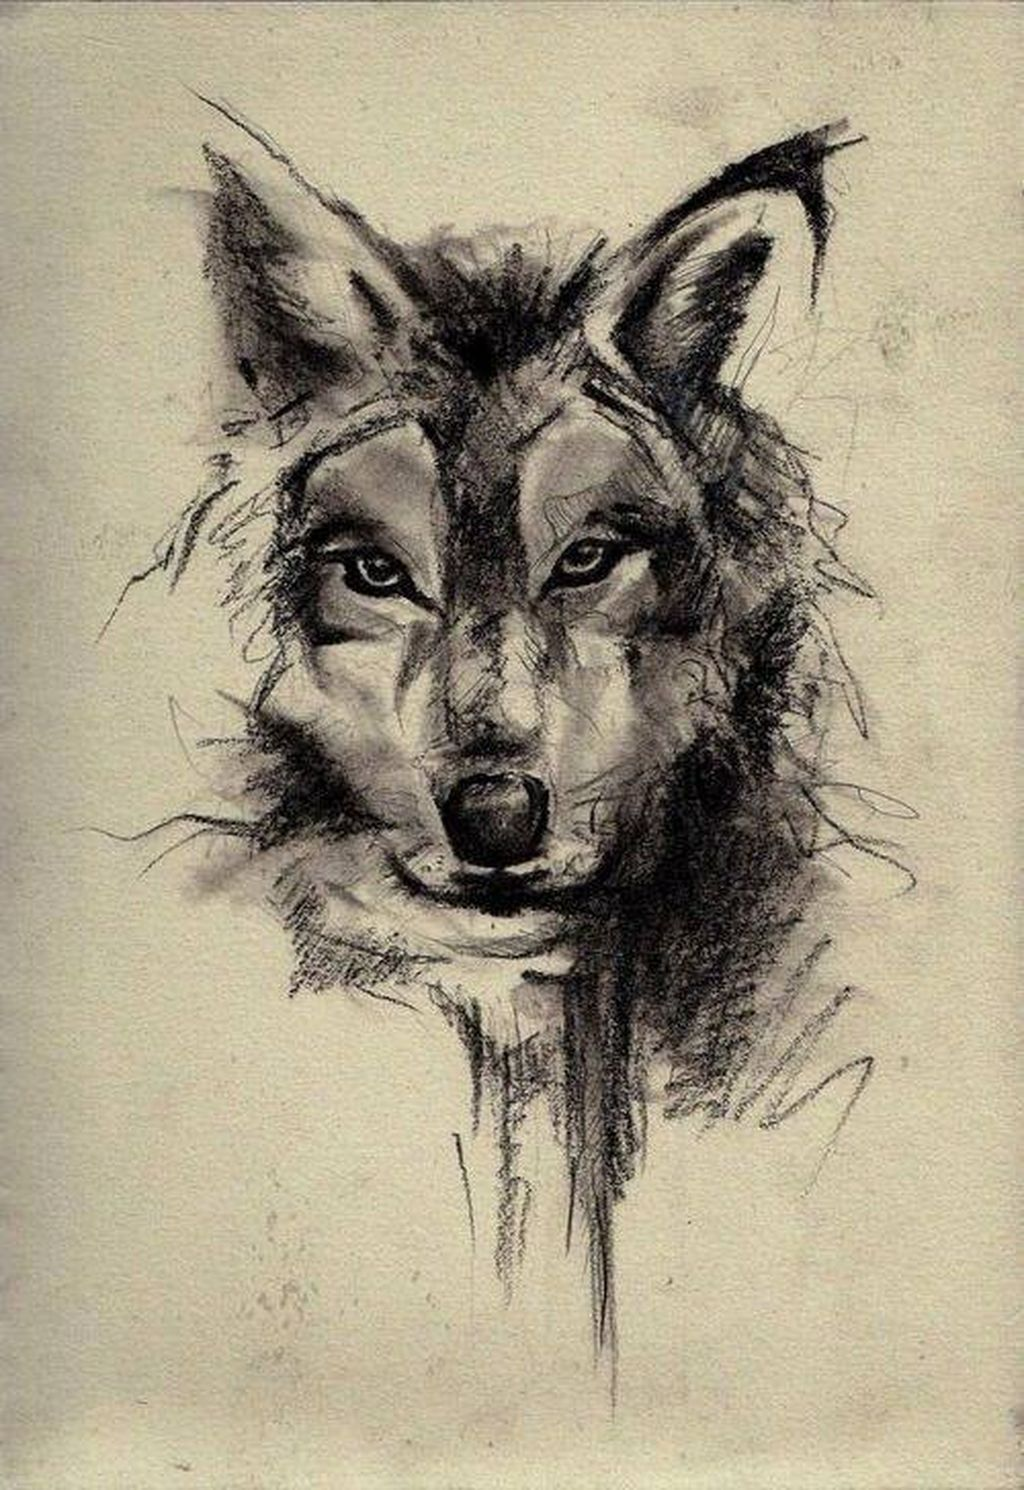 25 Striking Hamsa Tattoo Designs Wolves - Nice 25 cool wolf tattoo design ideas suitable for you who loves spirit animal more